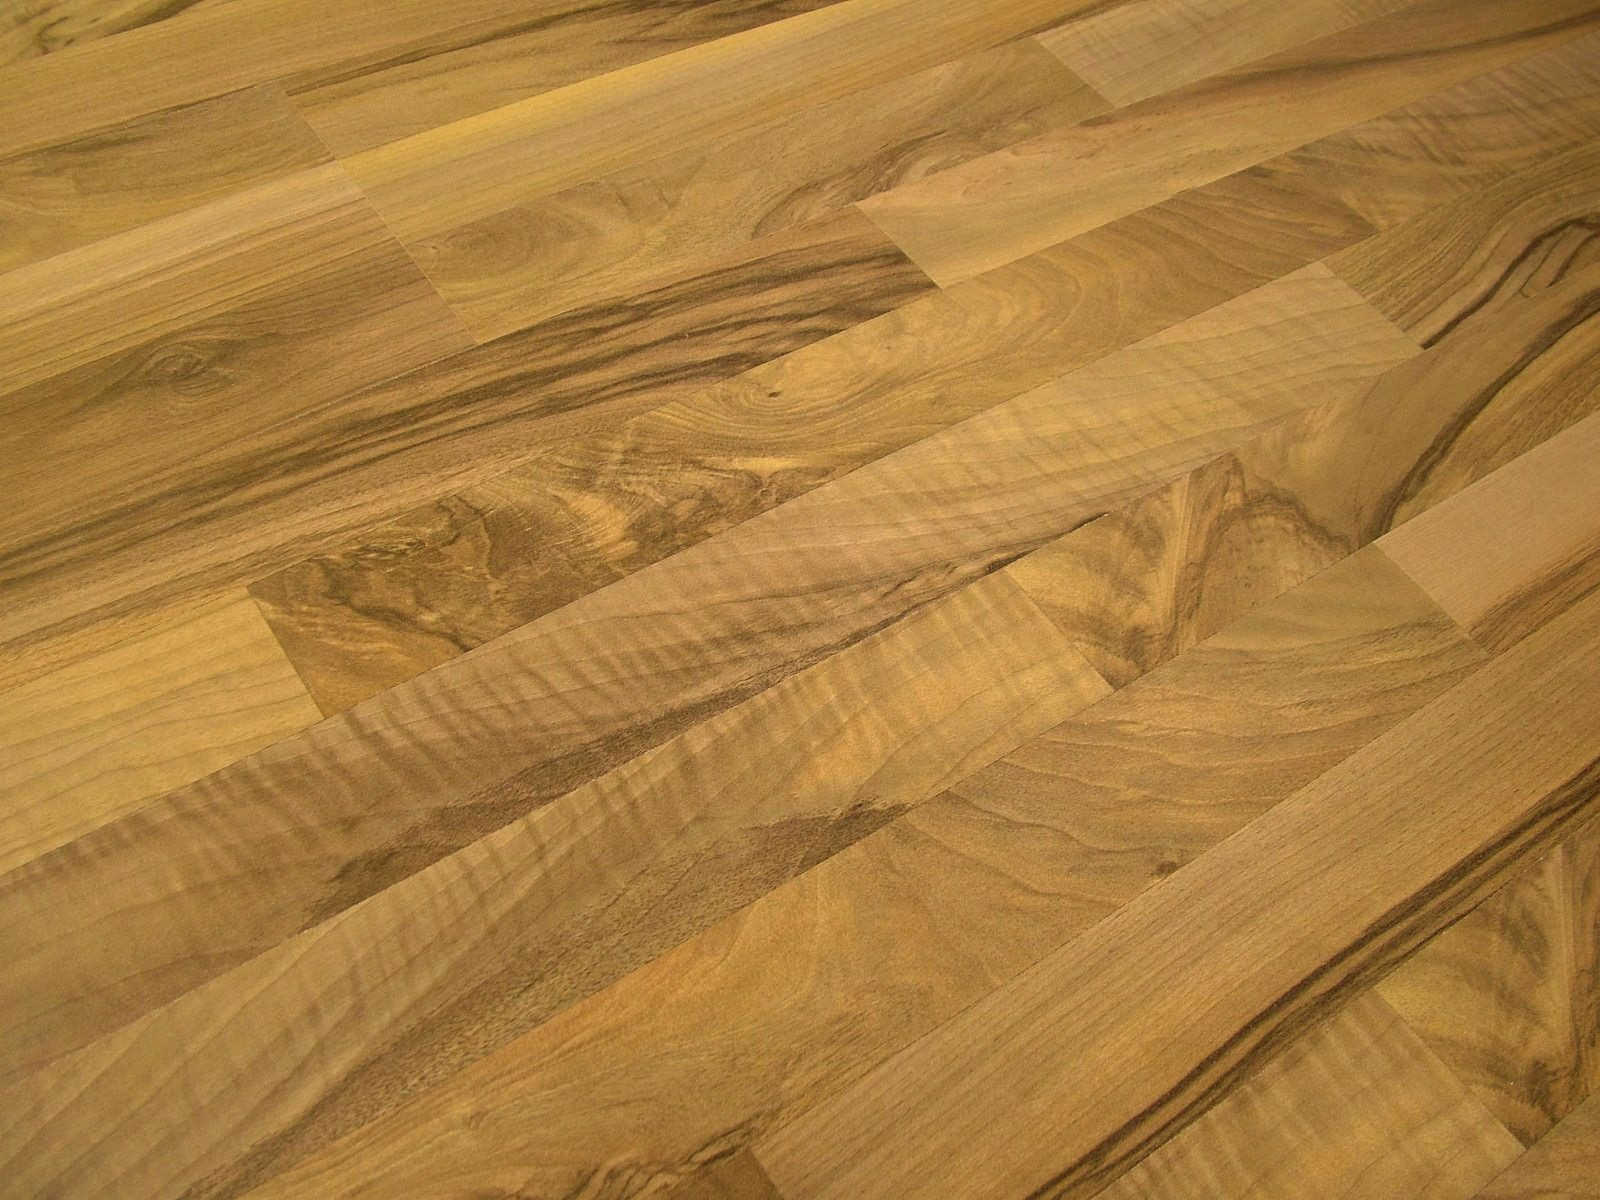 hardwood floor repair nashville tn of 38 elegant brown laminate flooring pics flooring design ideas in brown laminate flooring new kronotex sound plus ticino walnut to her 9mm laminate collection of 38